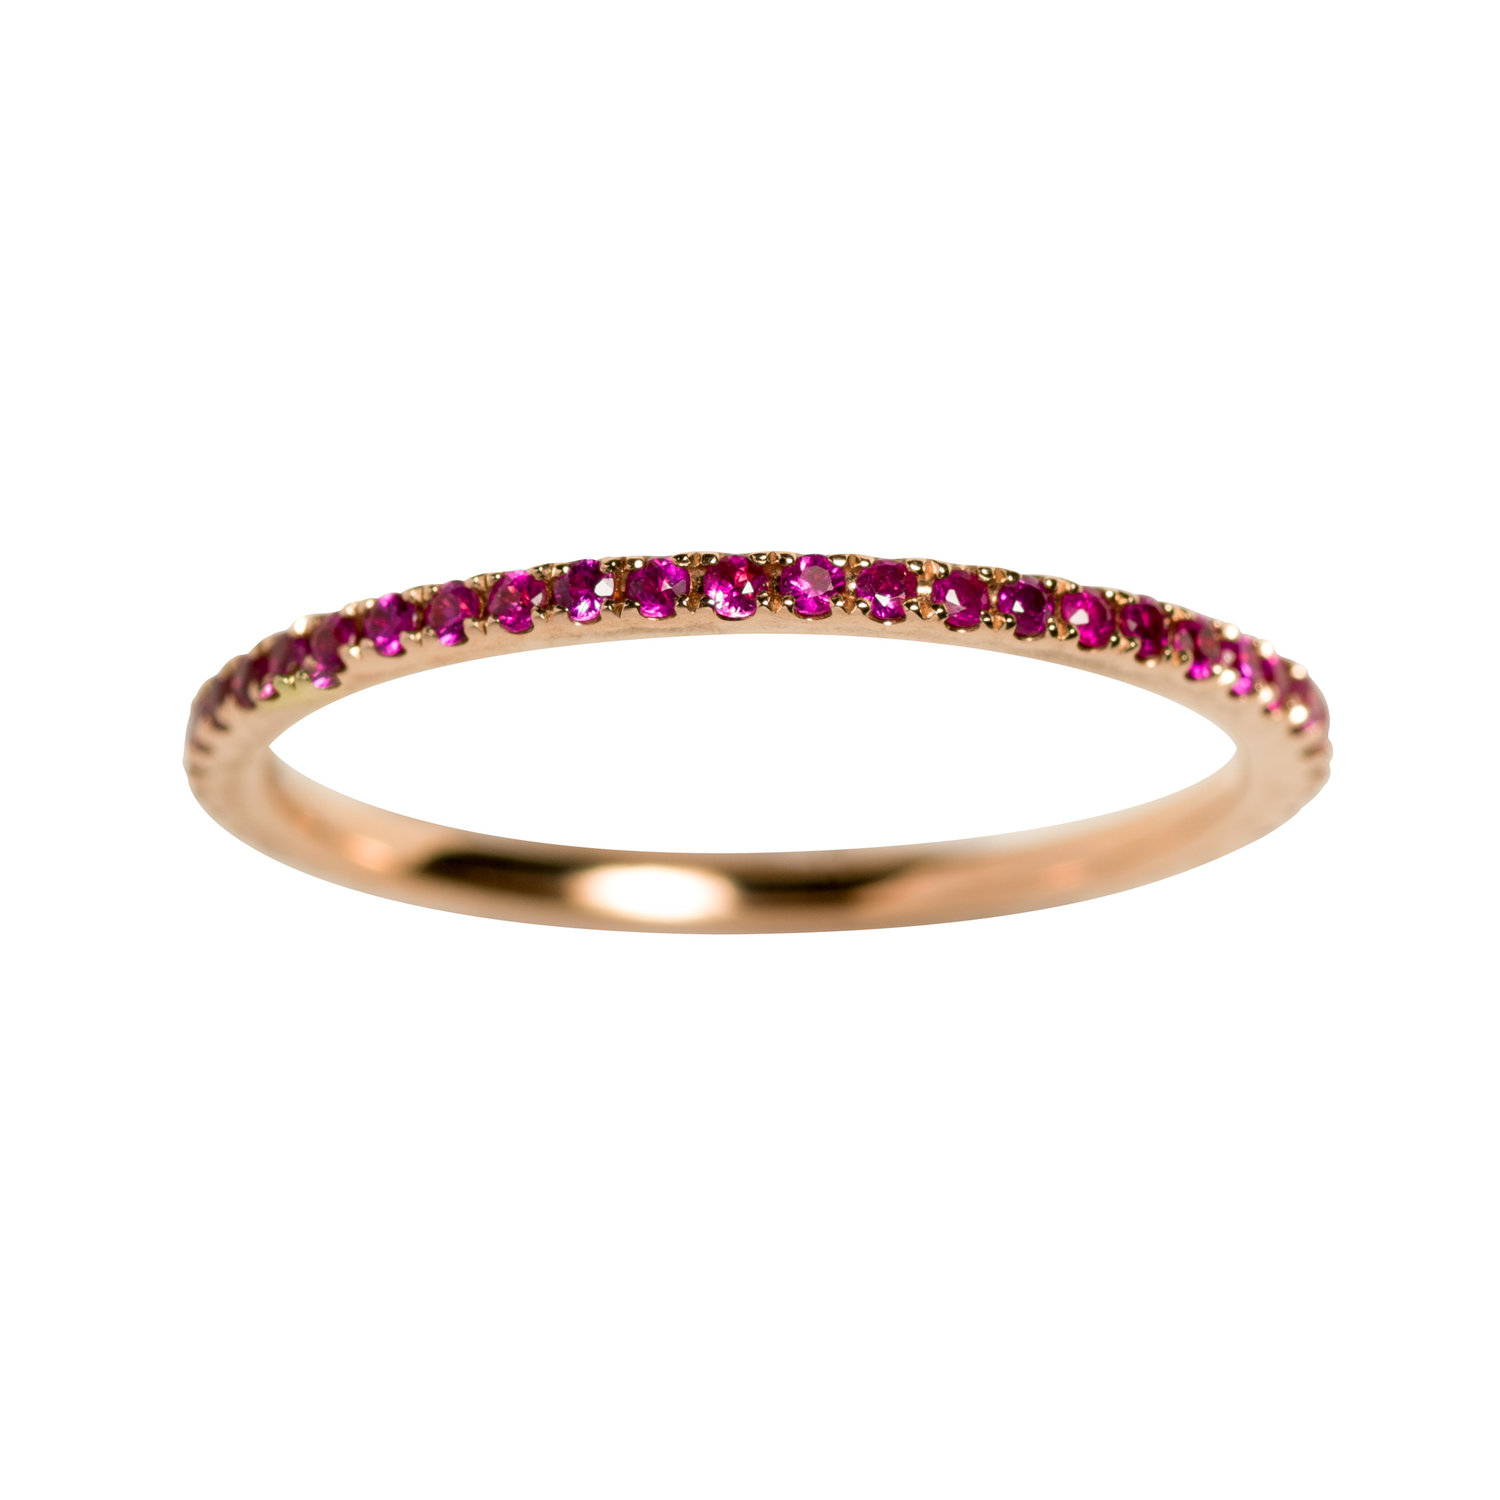 PETIT OLIVIA RING 16.000 NOK. 18 kt gold with pink sapphires